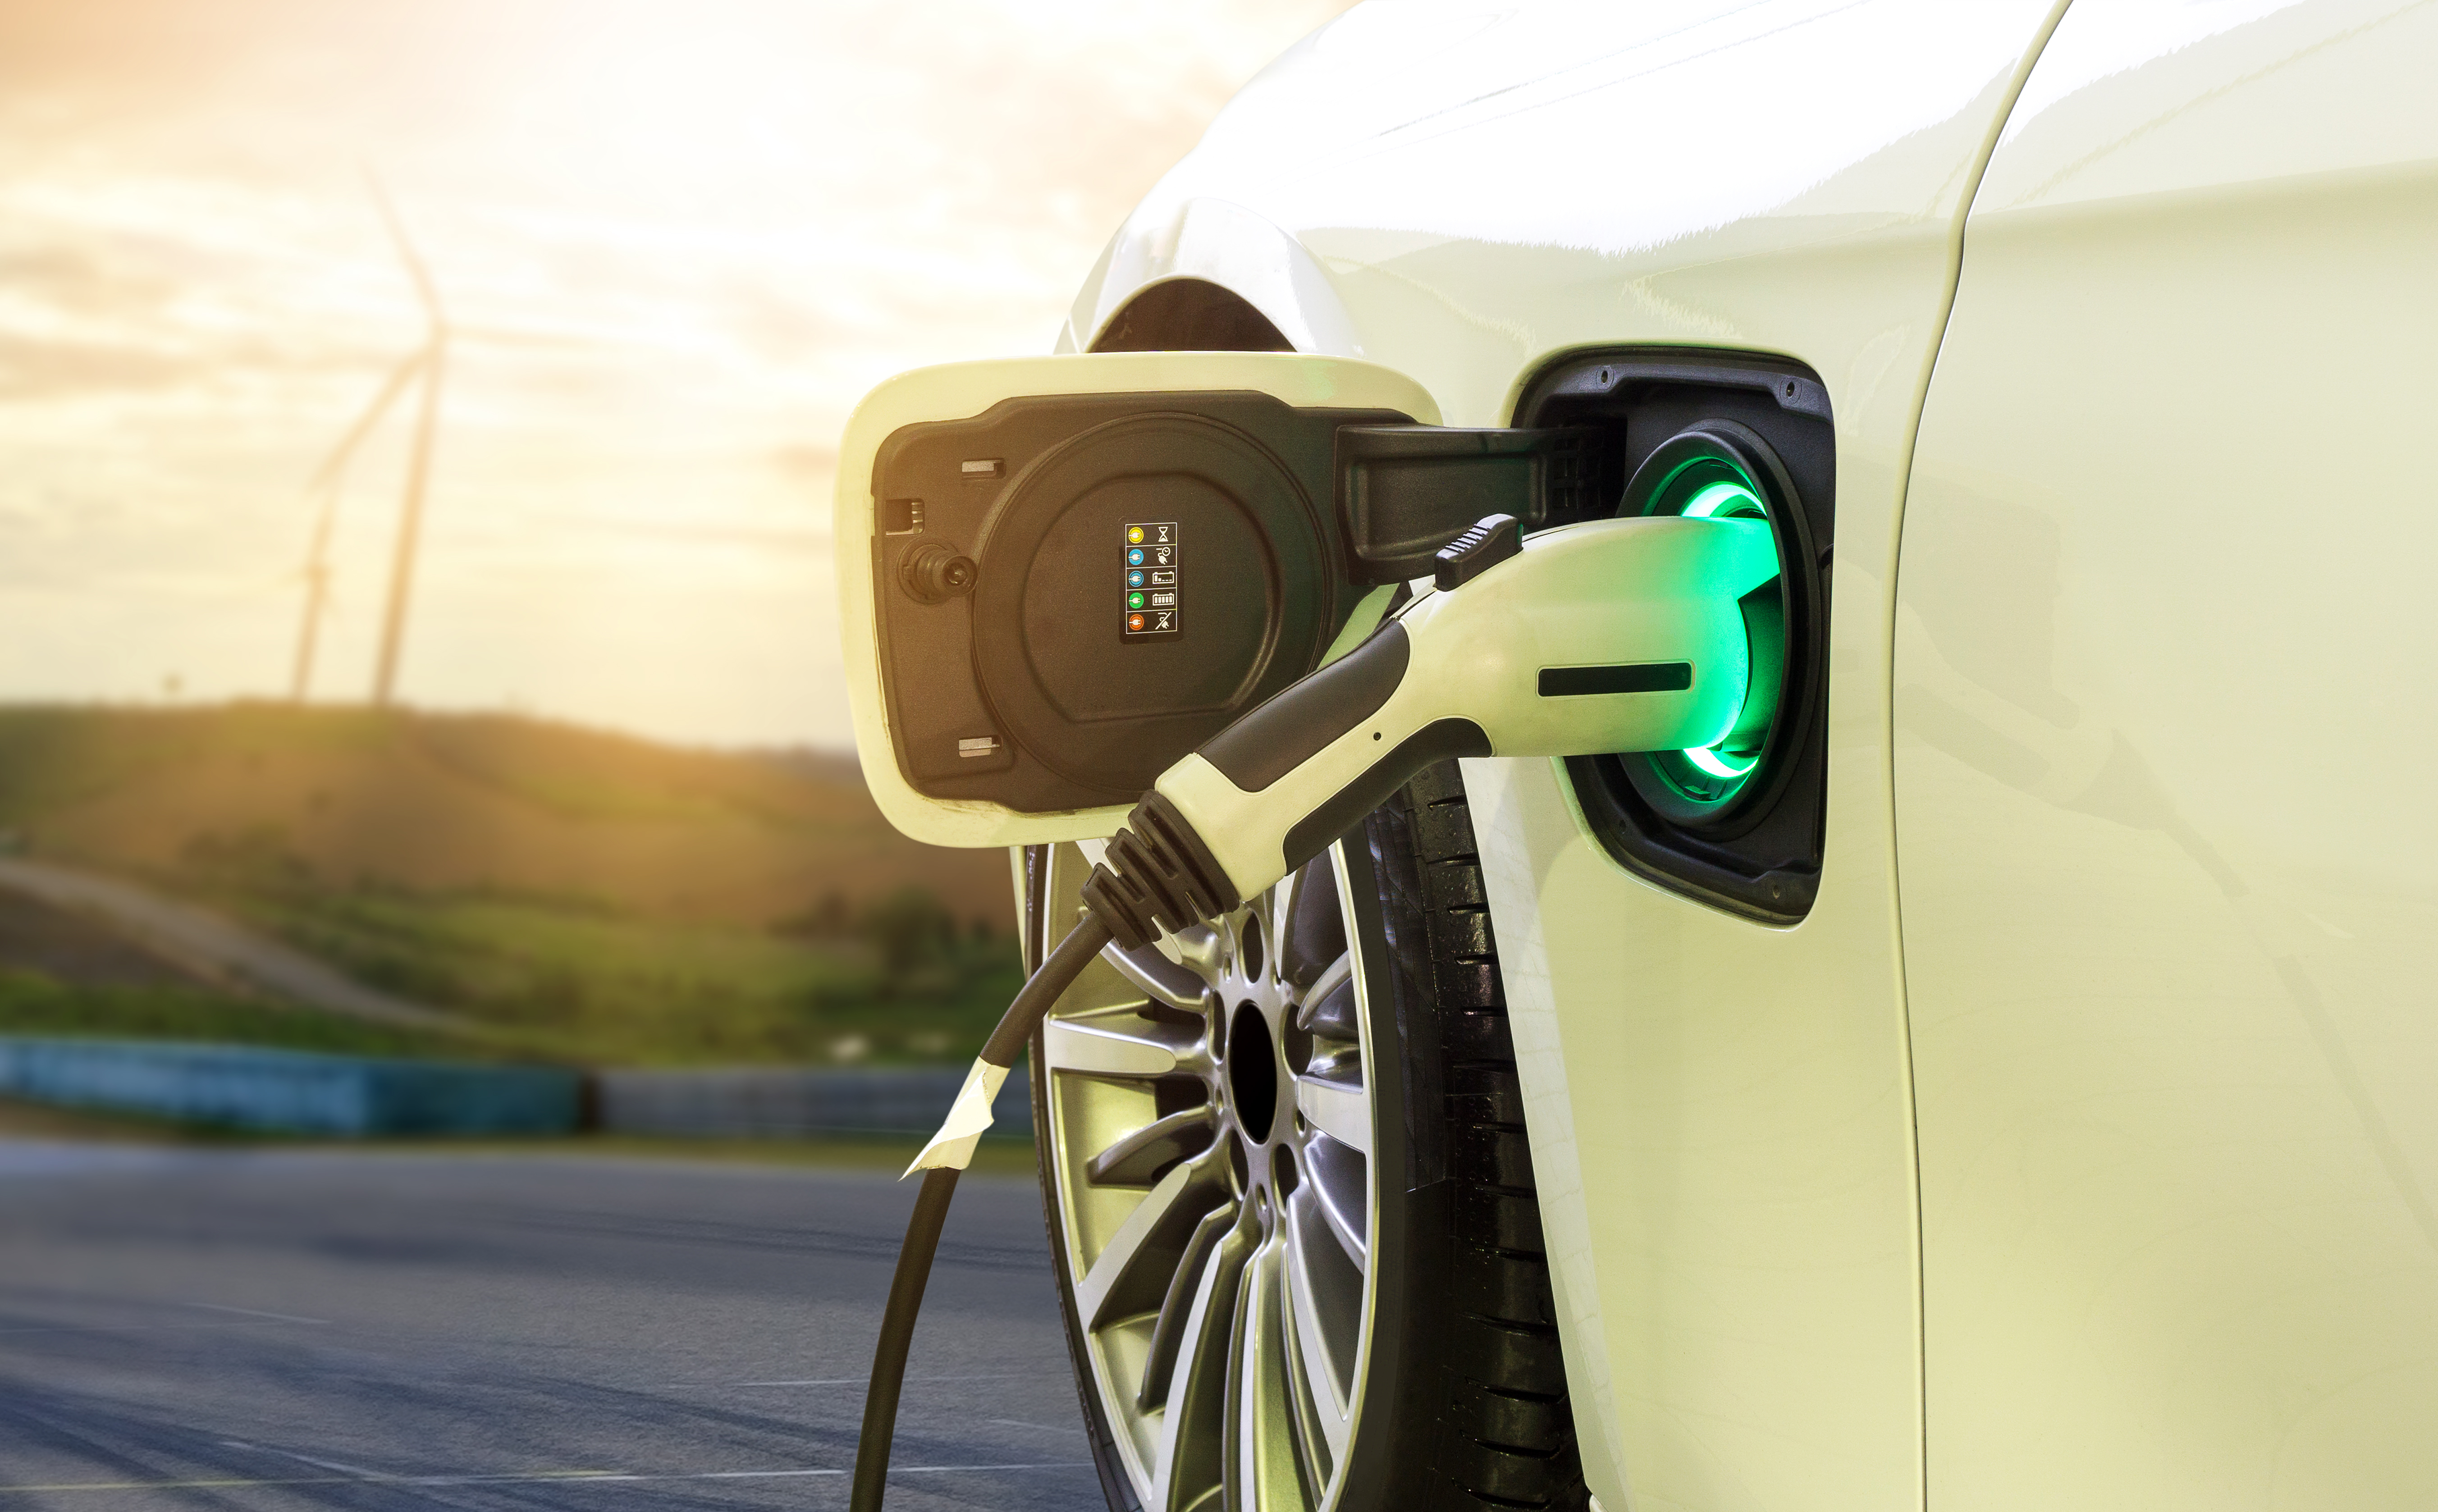 Automotive: the electric vehicle takes off in the midst of the crisis